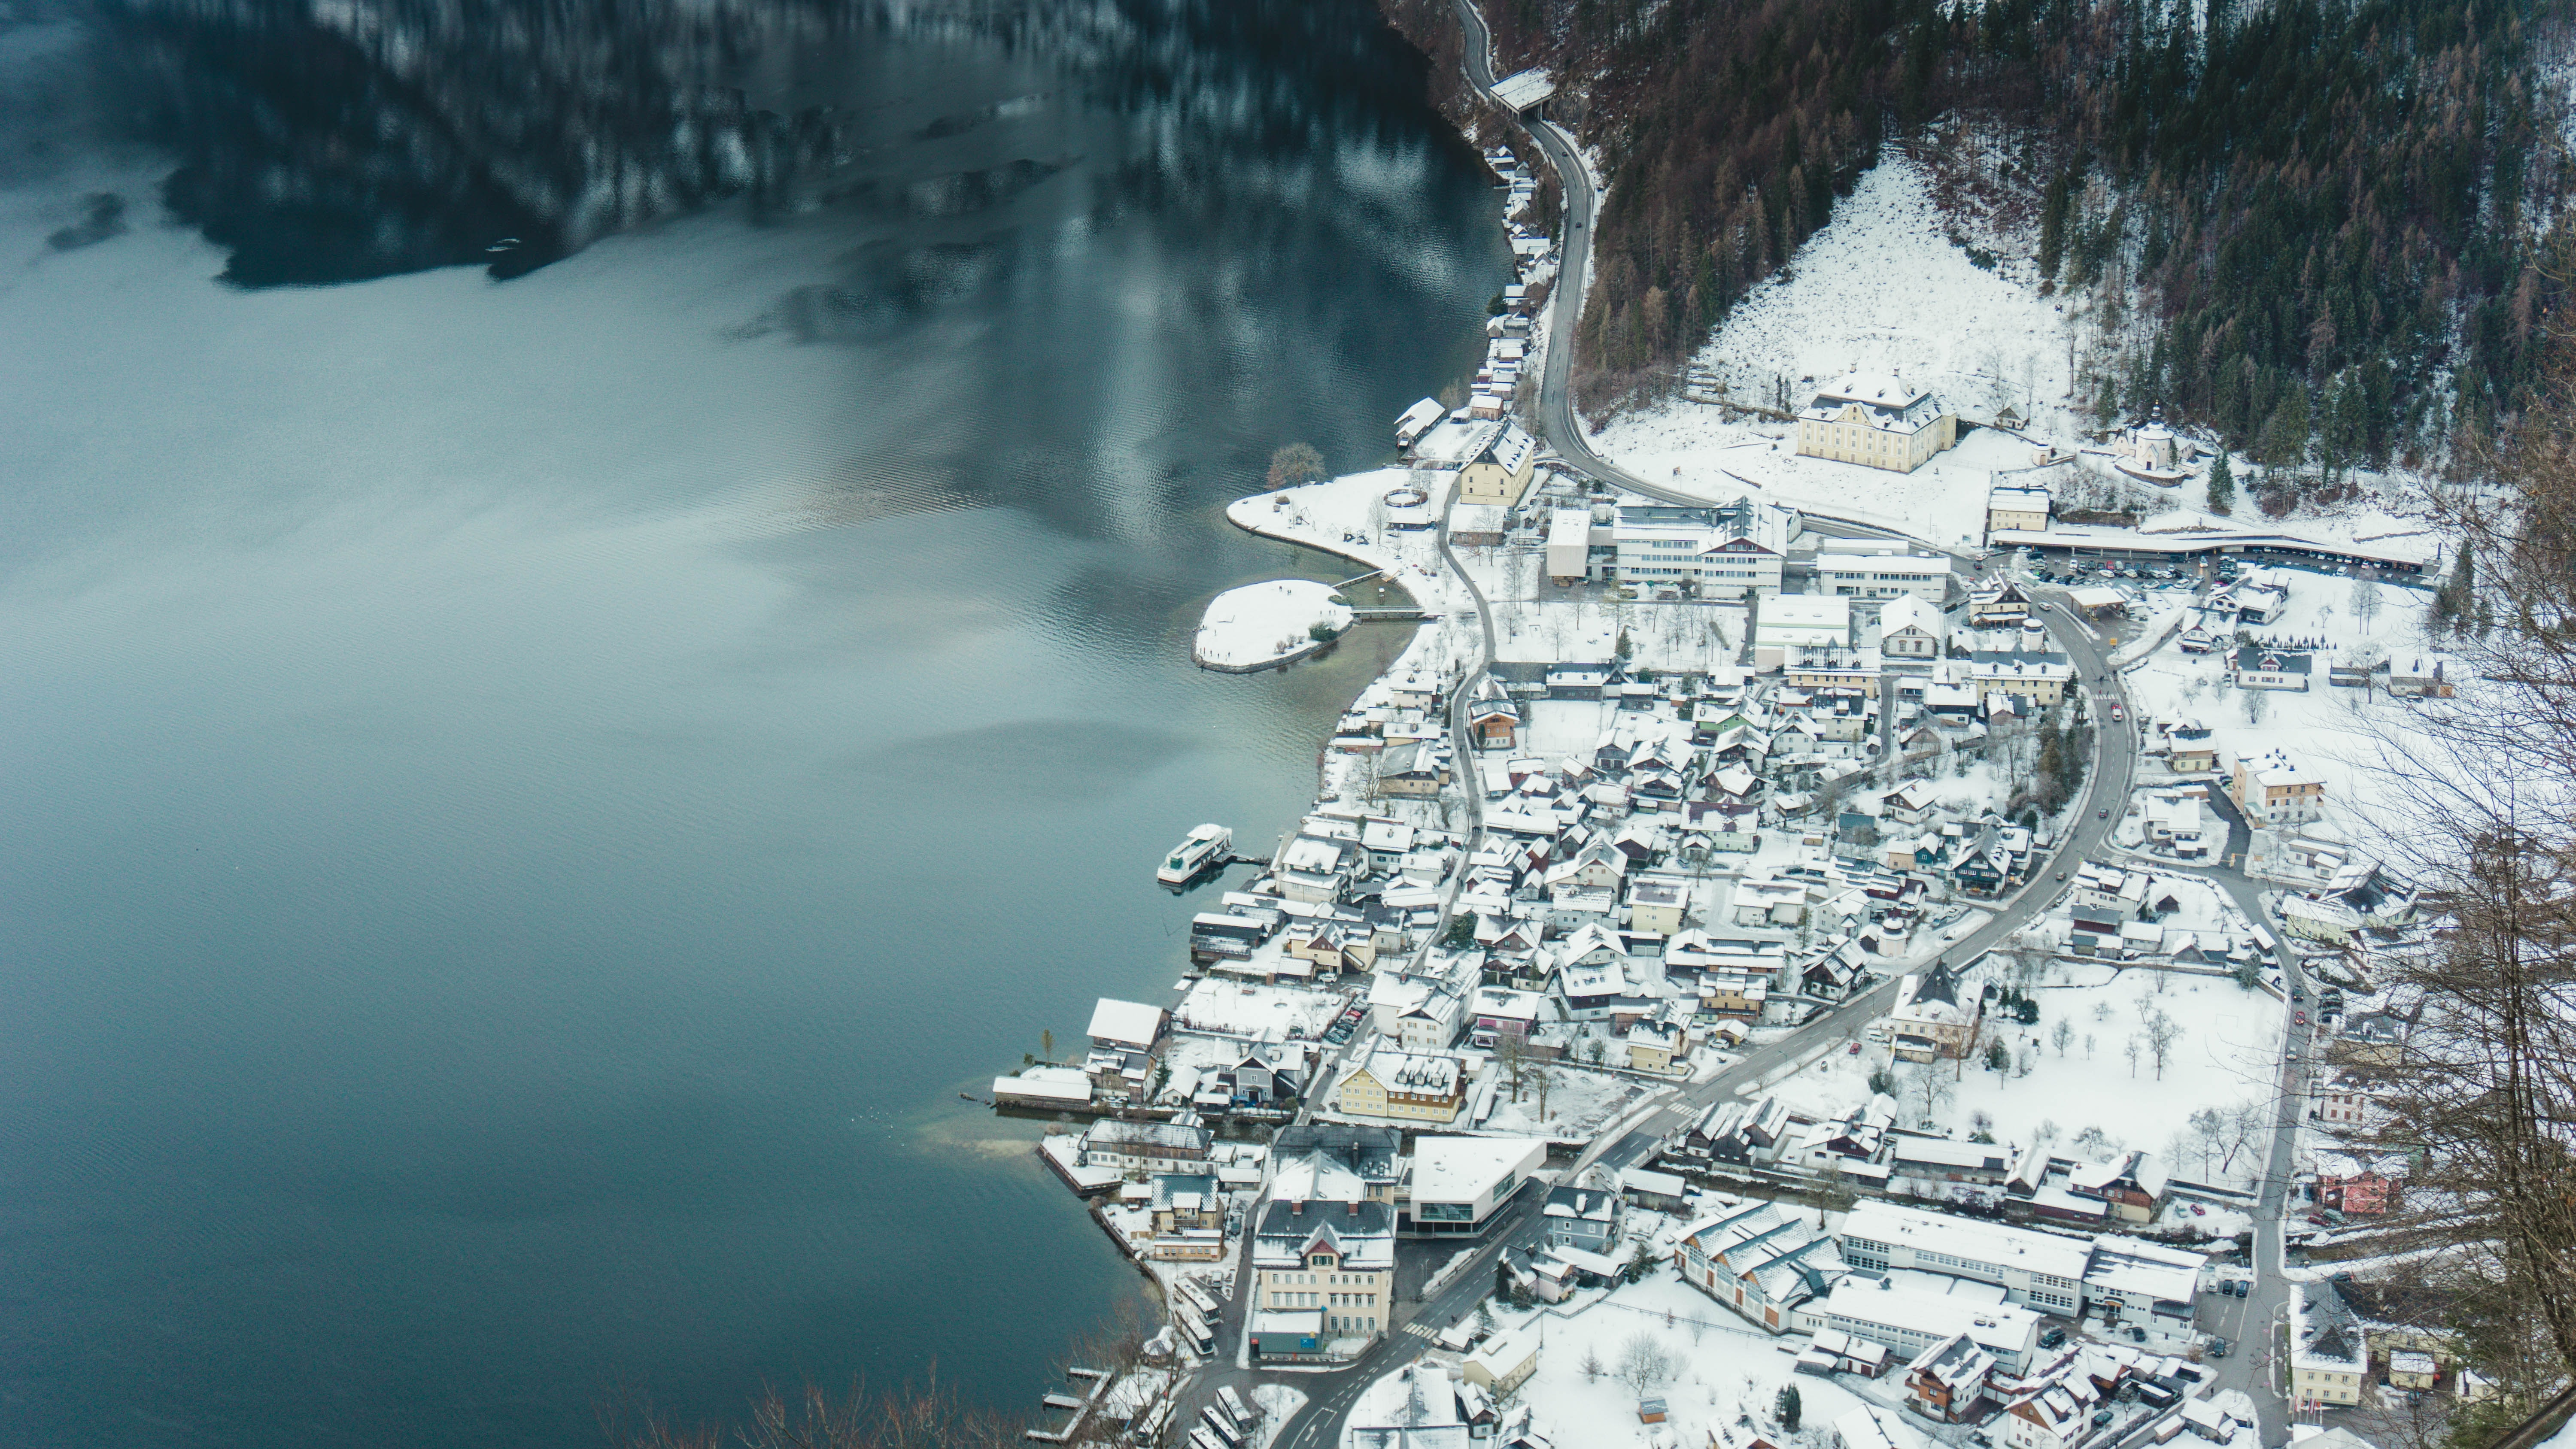 birds eye view of city building covered with snow